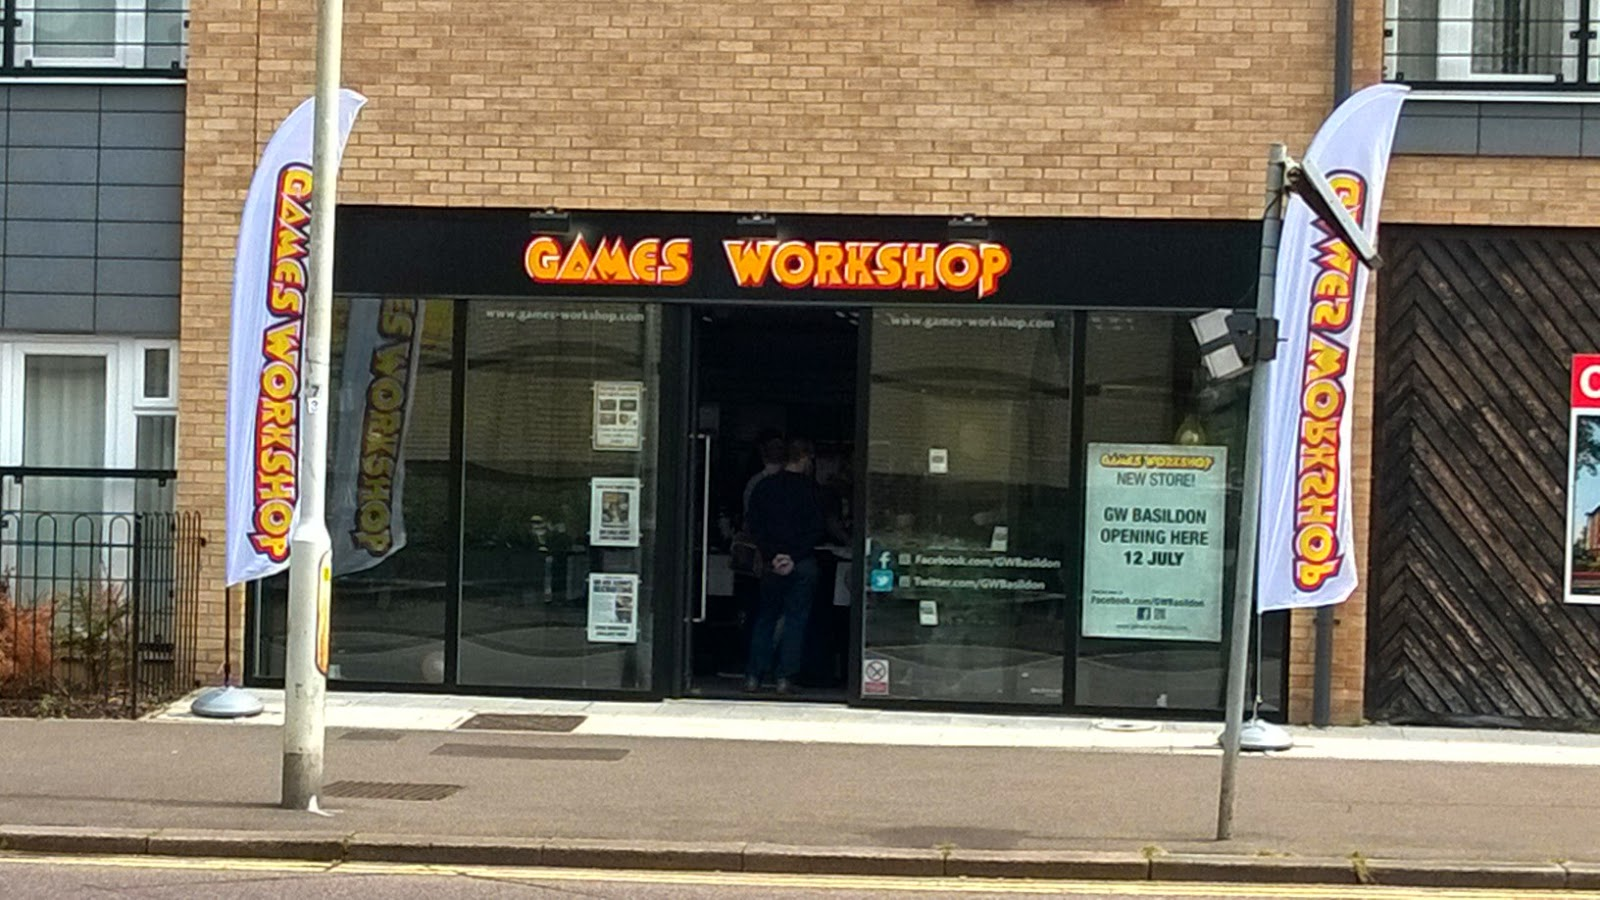 Games Workshop GW basildon